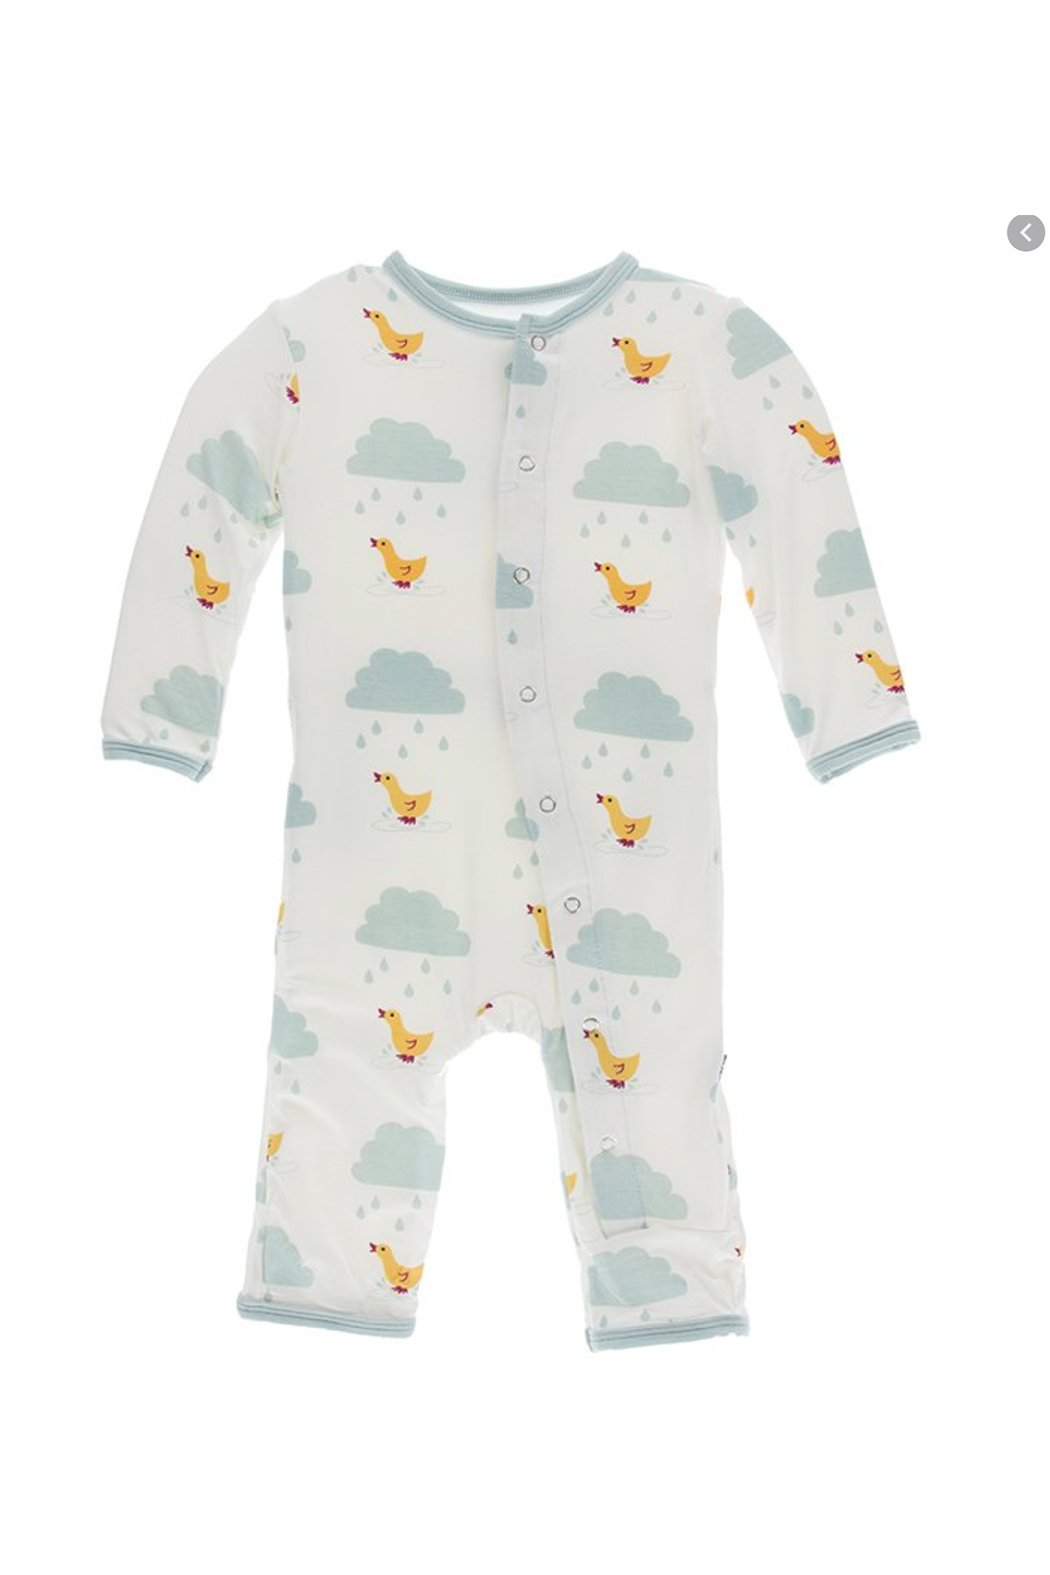 Kickee Pants Basic Coverall with Zipper in Puddle Duck - Main Image